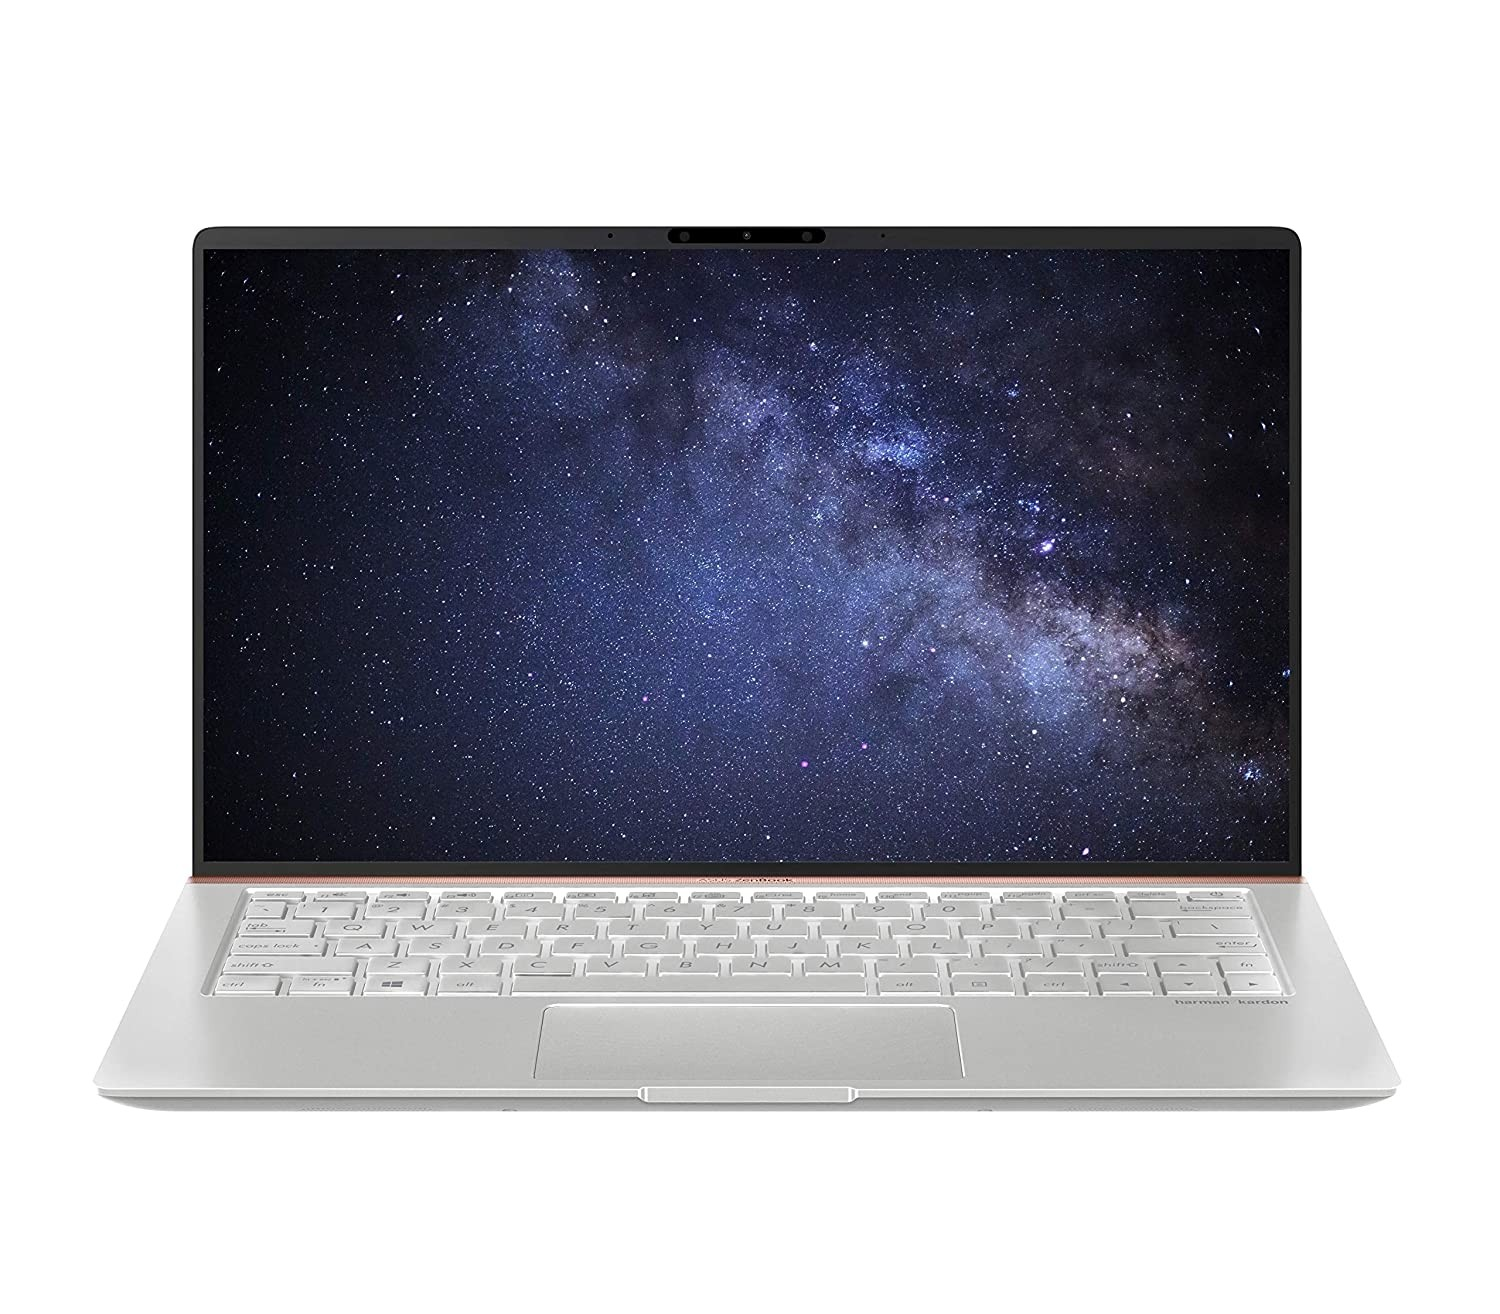 Refurbished laptops & desktops - Asus Zenbook 14 Ux433Fa-A6106T 14-Inch FHD Thin And Light Laptop (8TH Gen Intel Core I5-8265U/8GB RAM/512GB PCIE SSD/Windows 10/Integrated Graphics/1.19 Kg), Icicle Silver Metal